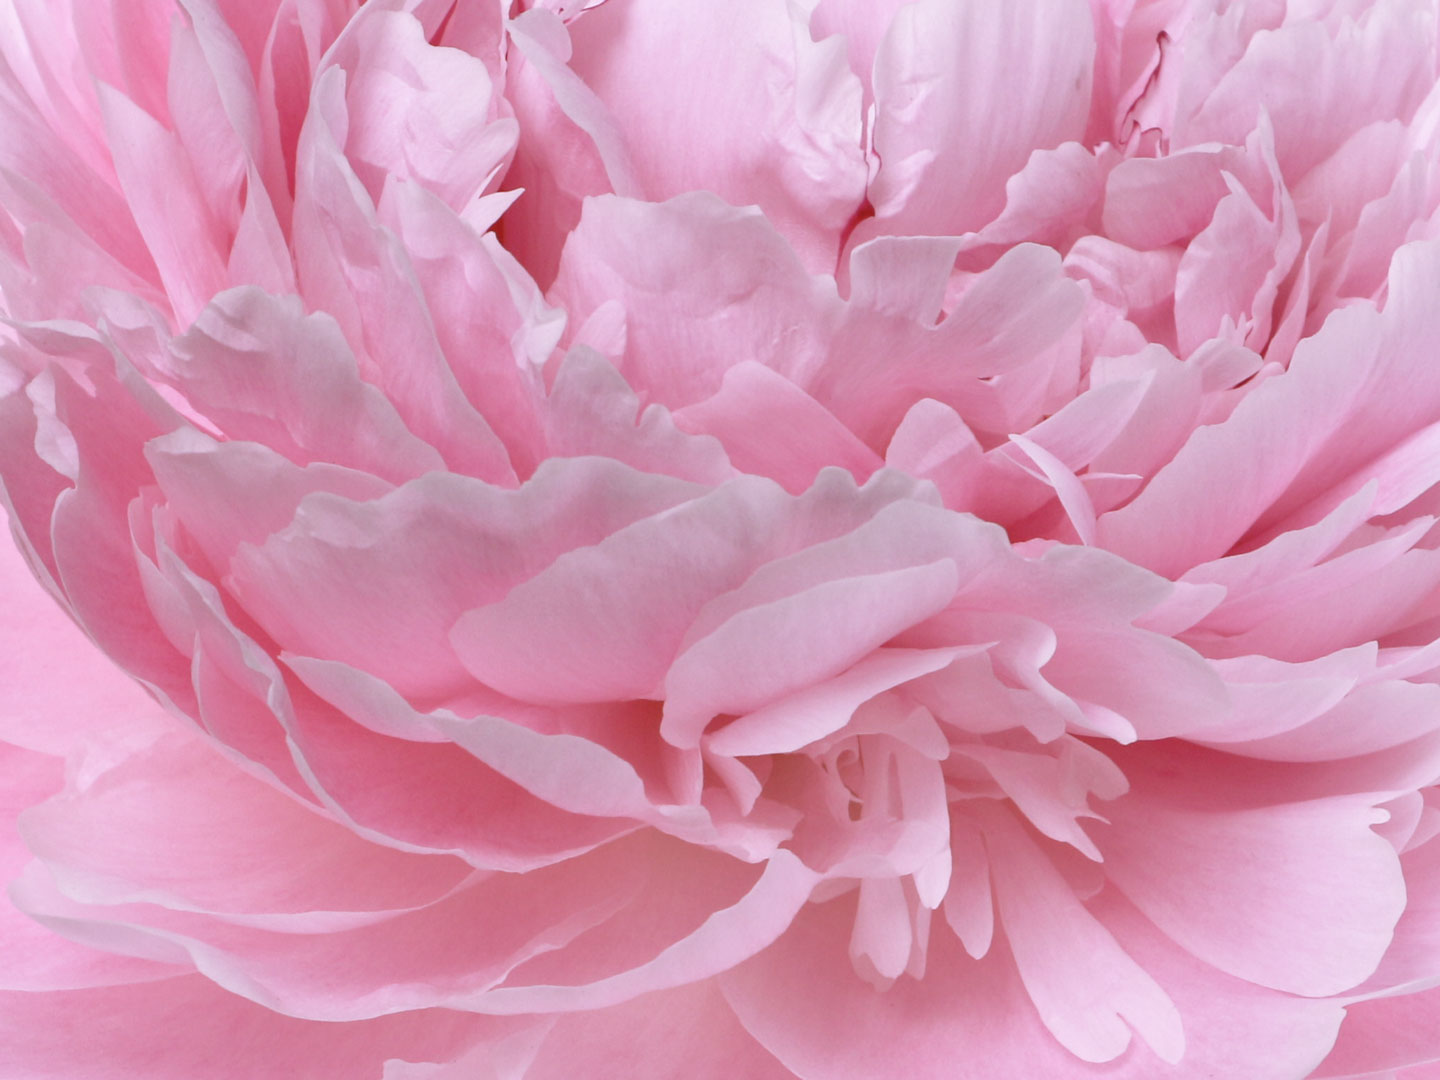 French Photographer Paris Studio Packshot Nature Photography Close-up Heart of Pink Peony